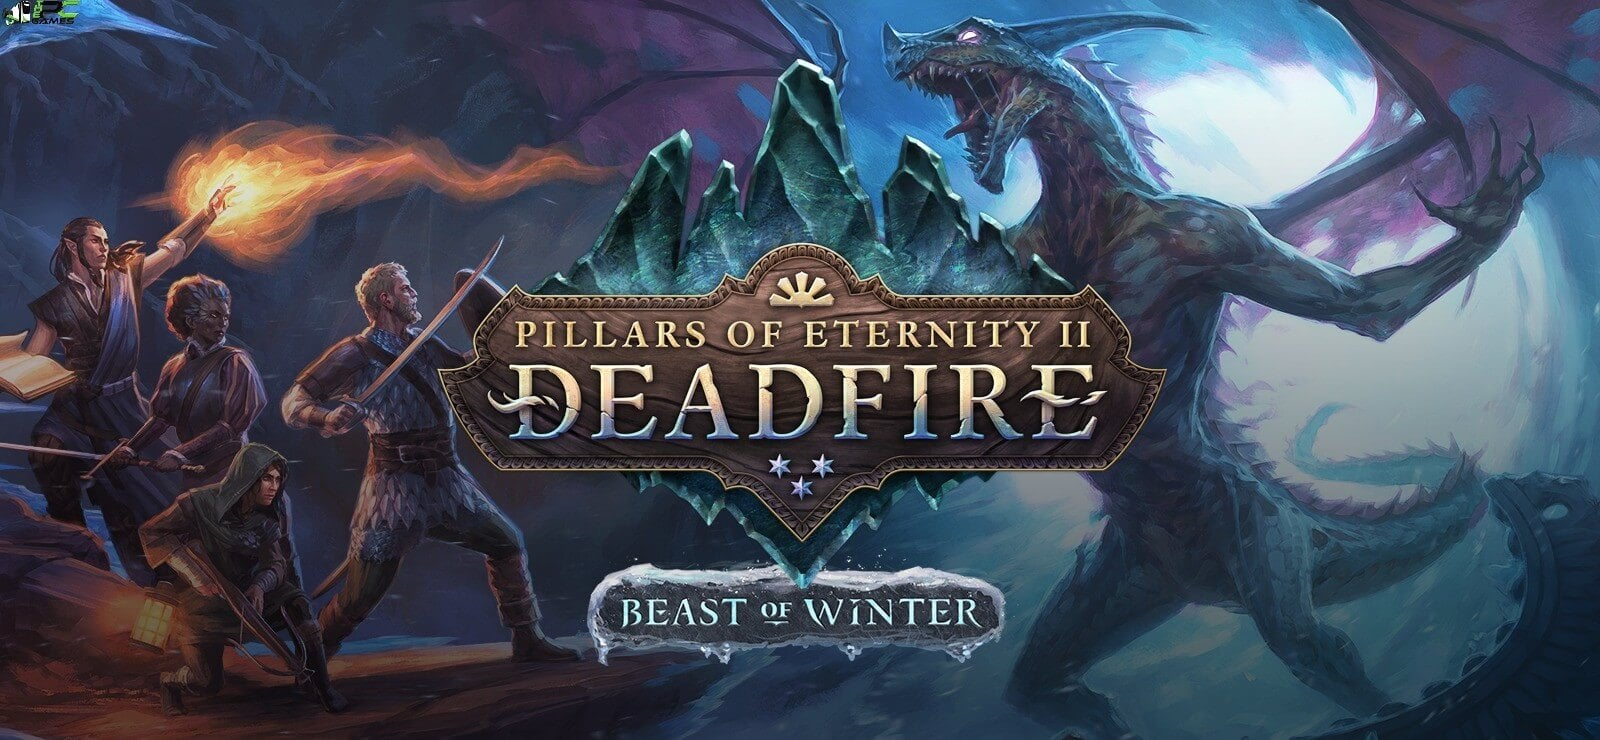 Pillars of Eternity 2 Deadfire Beast of Winter Free Download